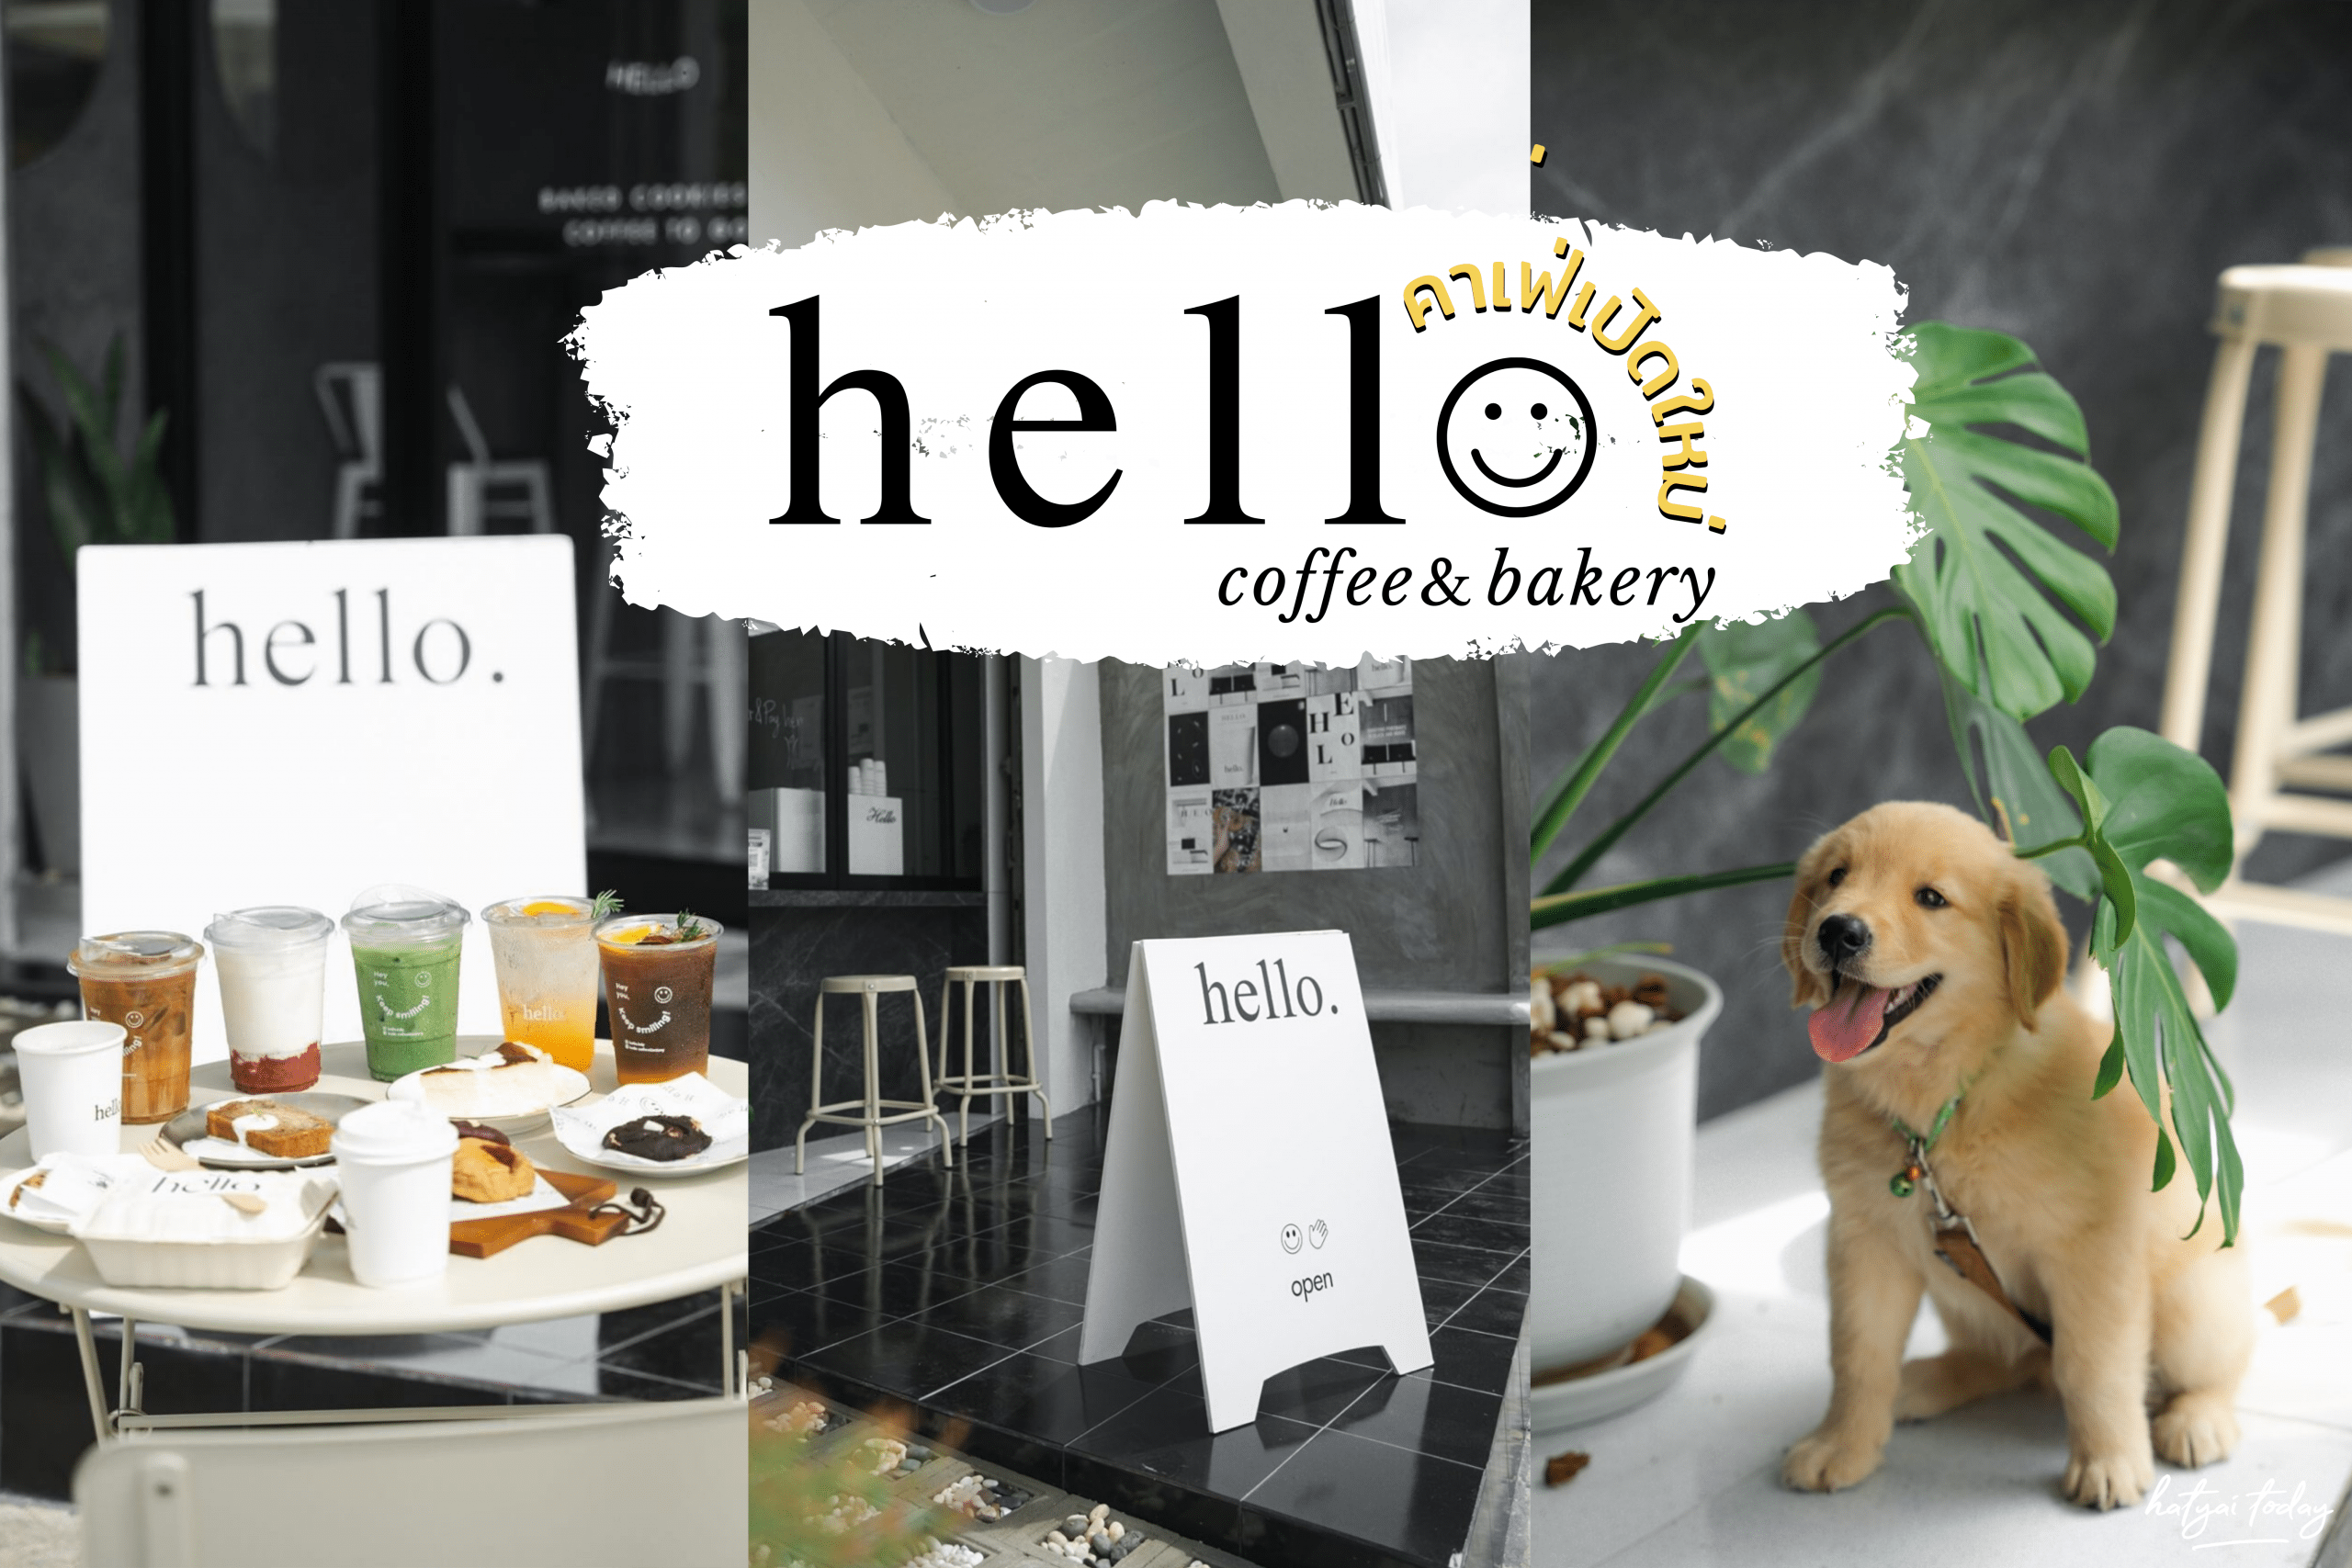 Hello coffee & bakery